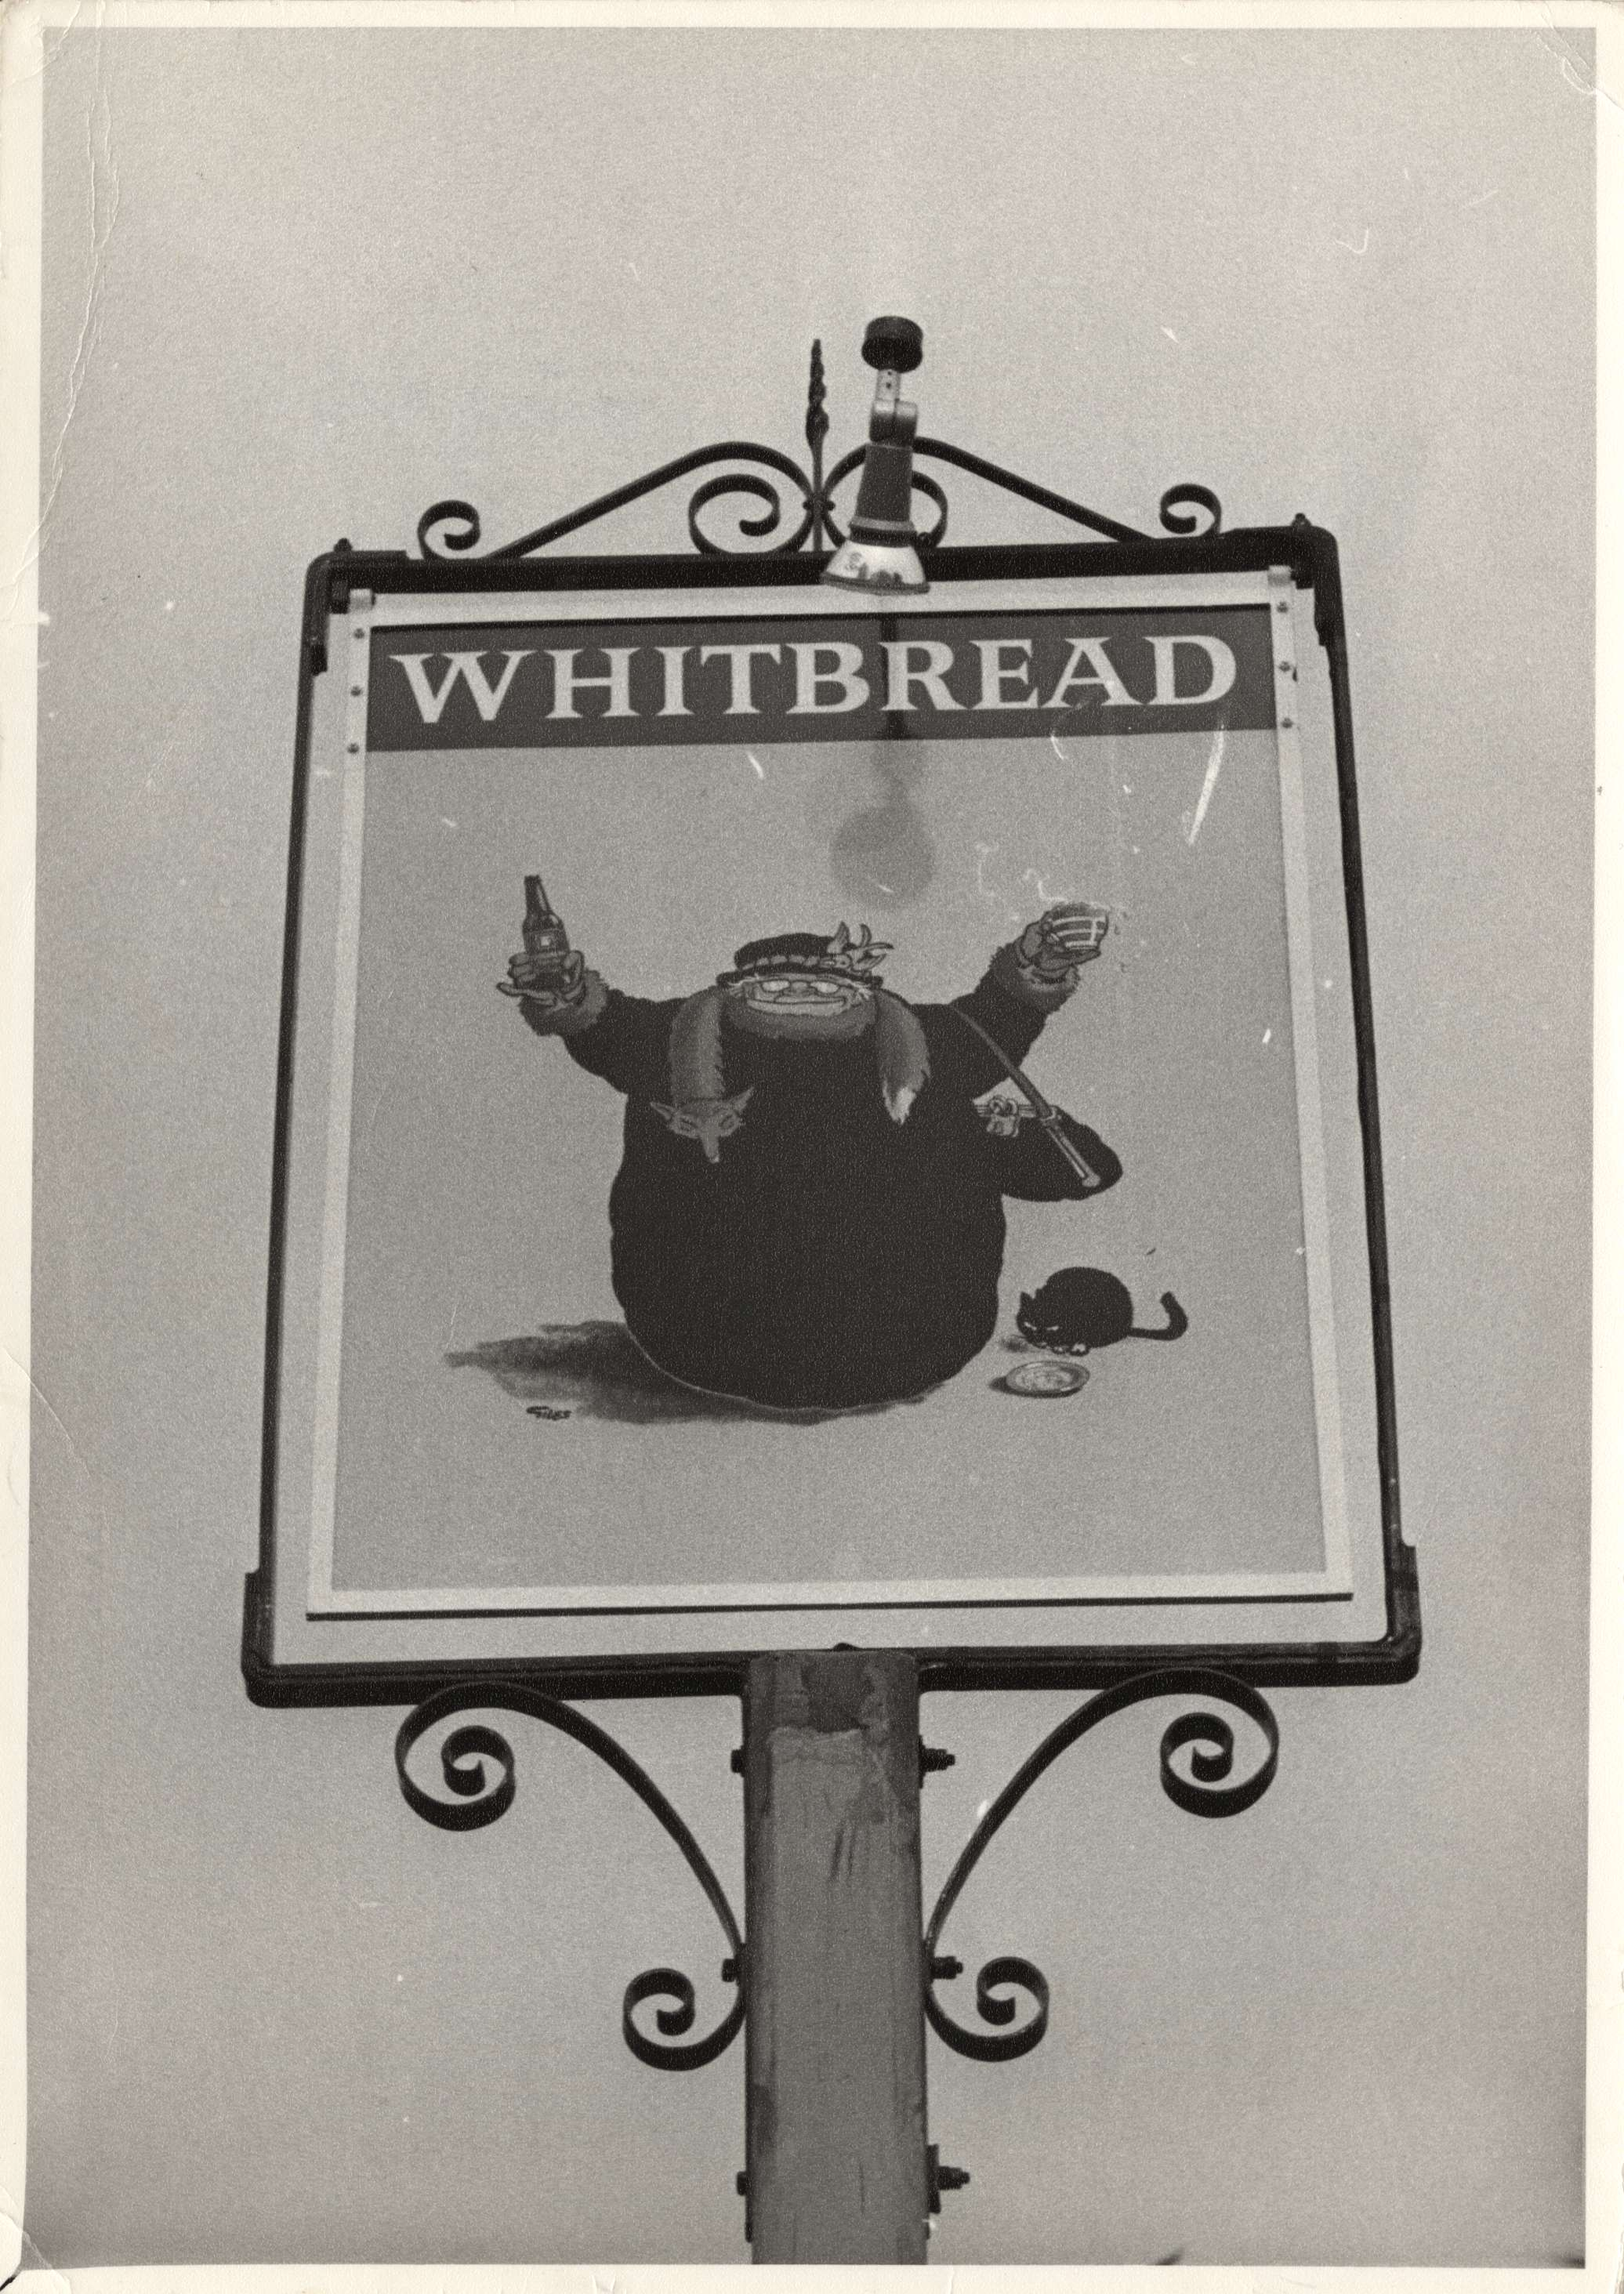 Black and white photo of the sign for 'The Giles' pub, which includes a picture of Grandma and Natalie the cat - 30 October 1973 (Image ref: GAPH00069)